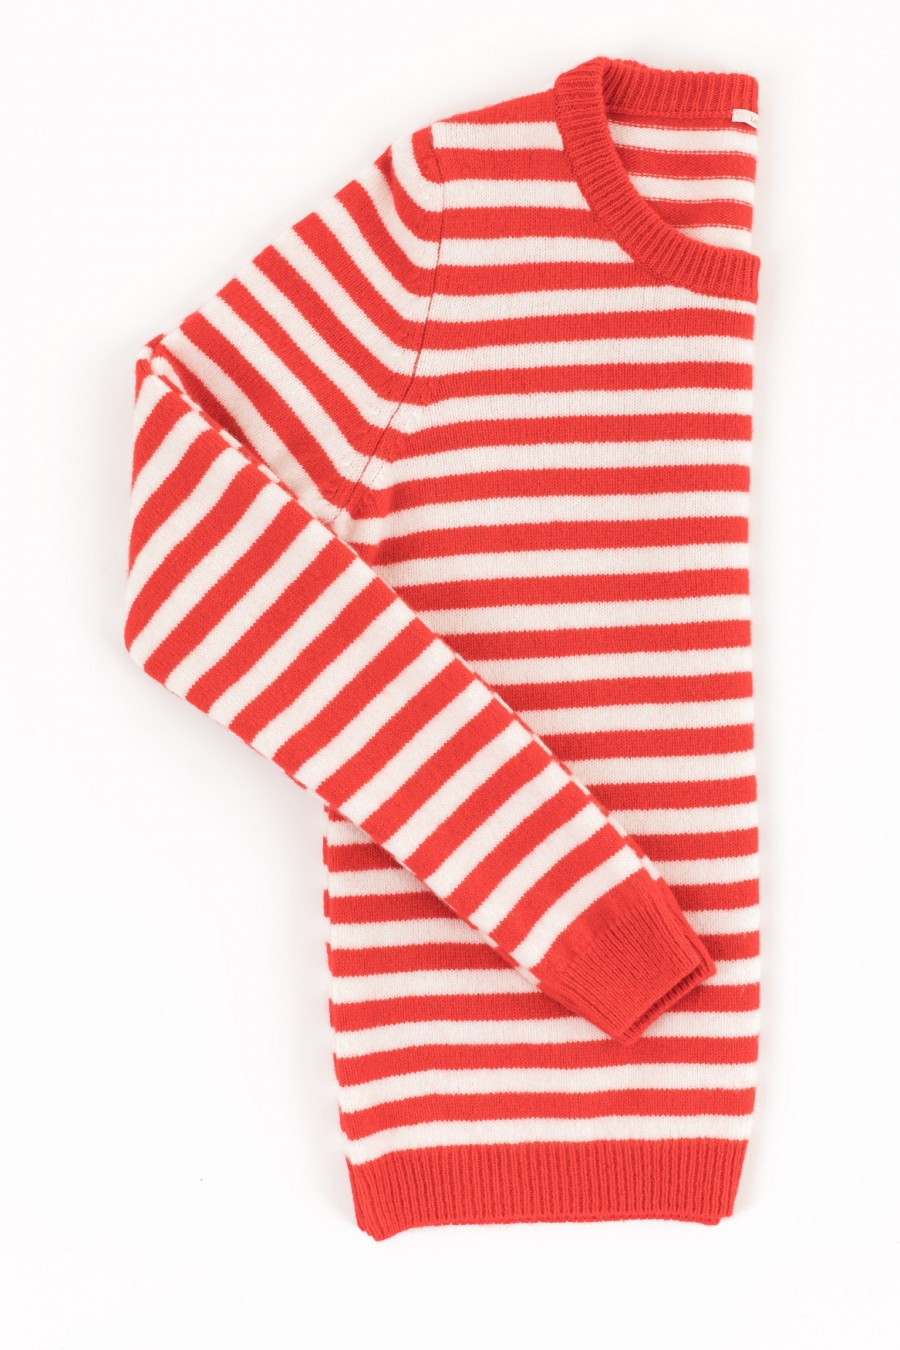 Soft pullover with red and white stripes